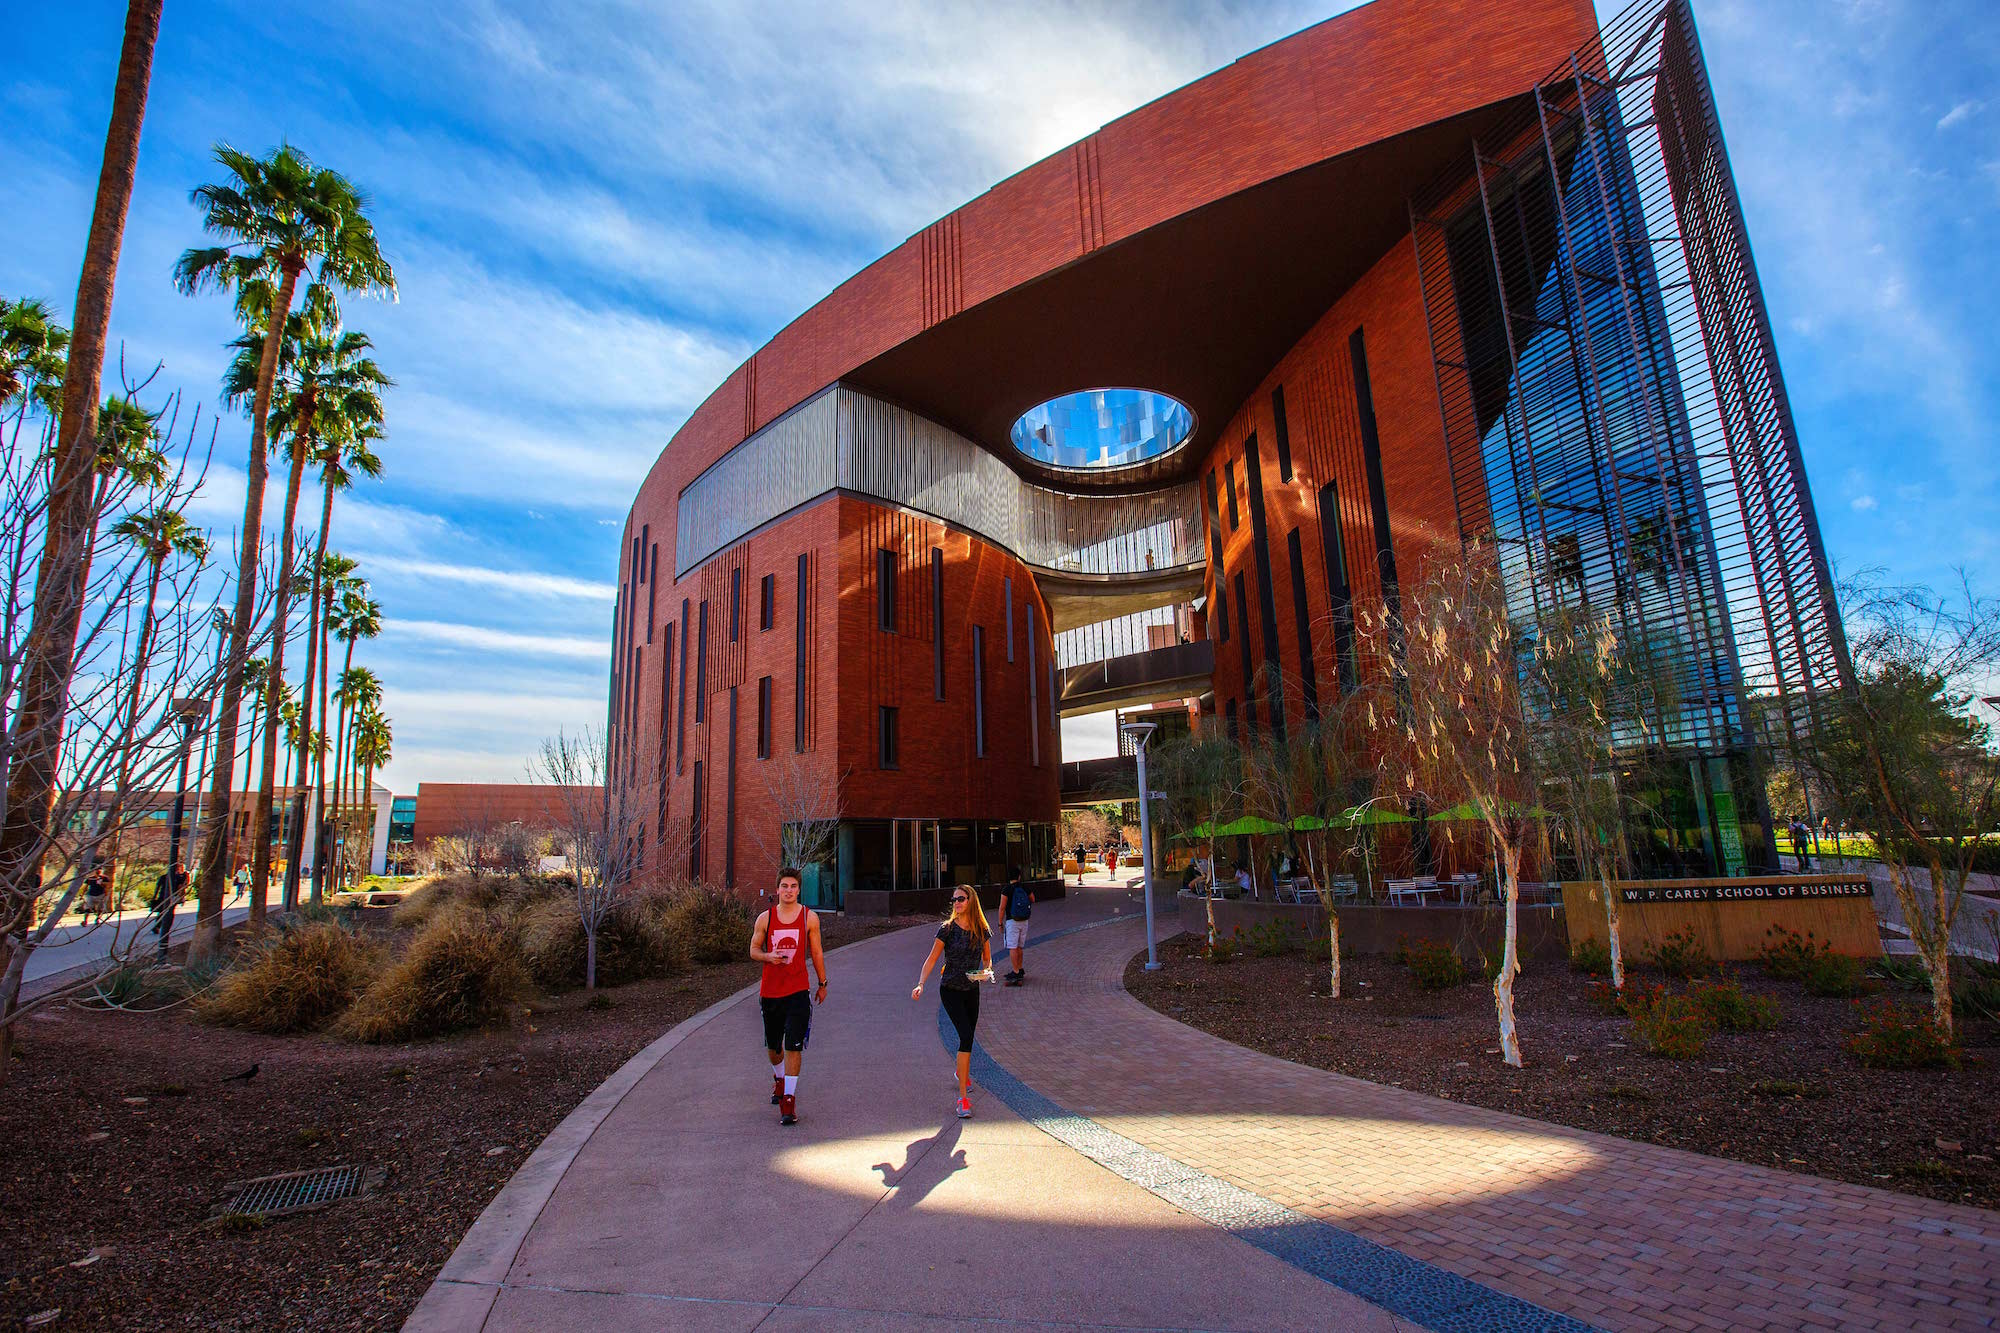 university of arizona admissions essay University of arizona application essays (college admissions essays) writing service, buy essays, term papers, research papers buy online, ua college application time allow about 30 minutes to complete your application.